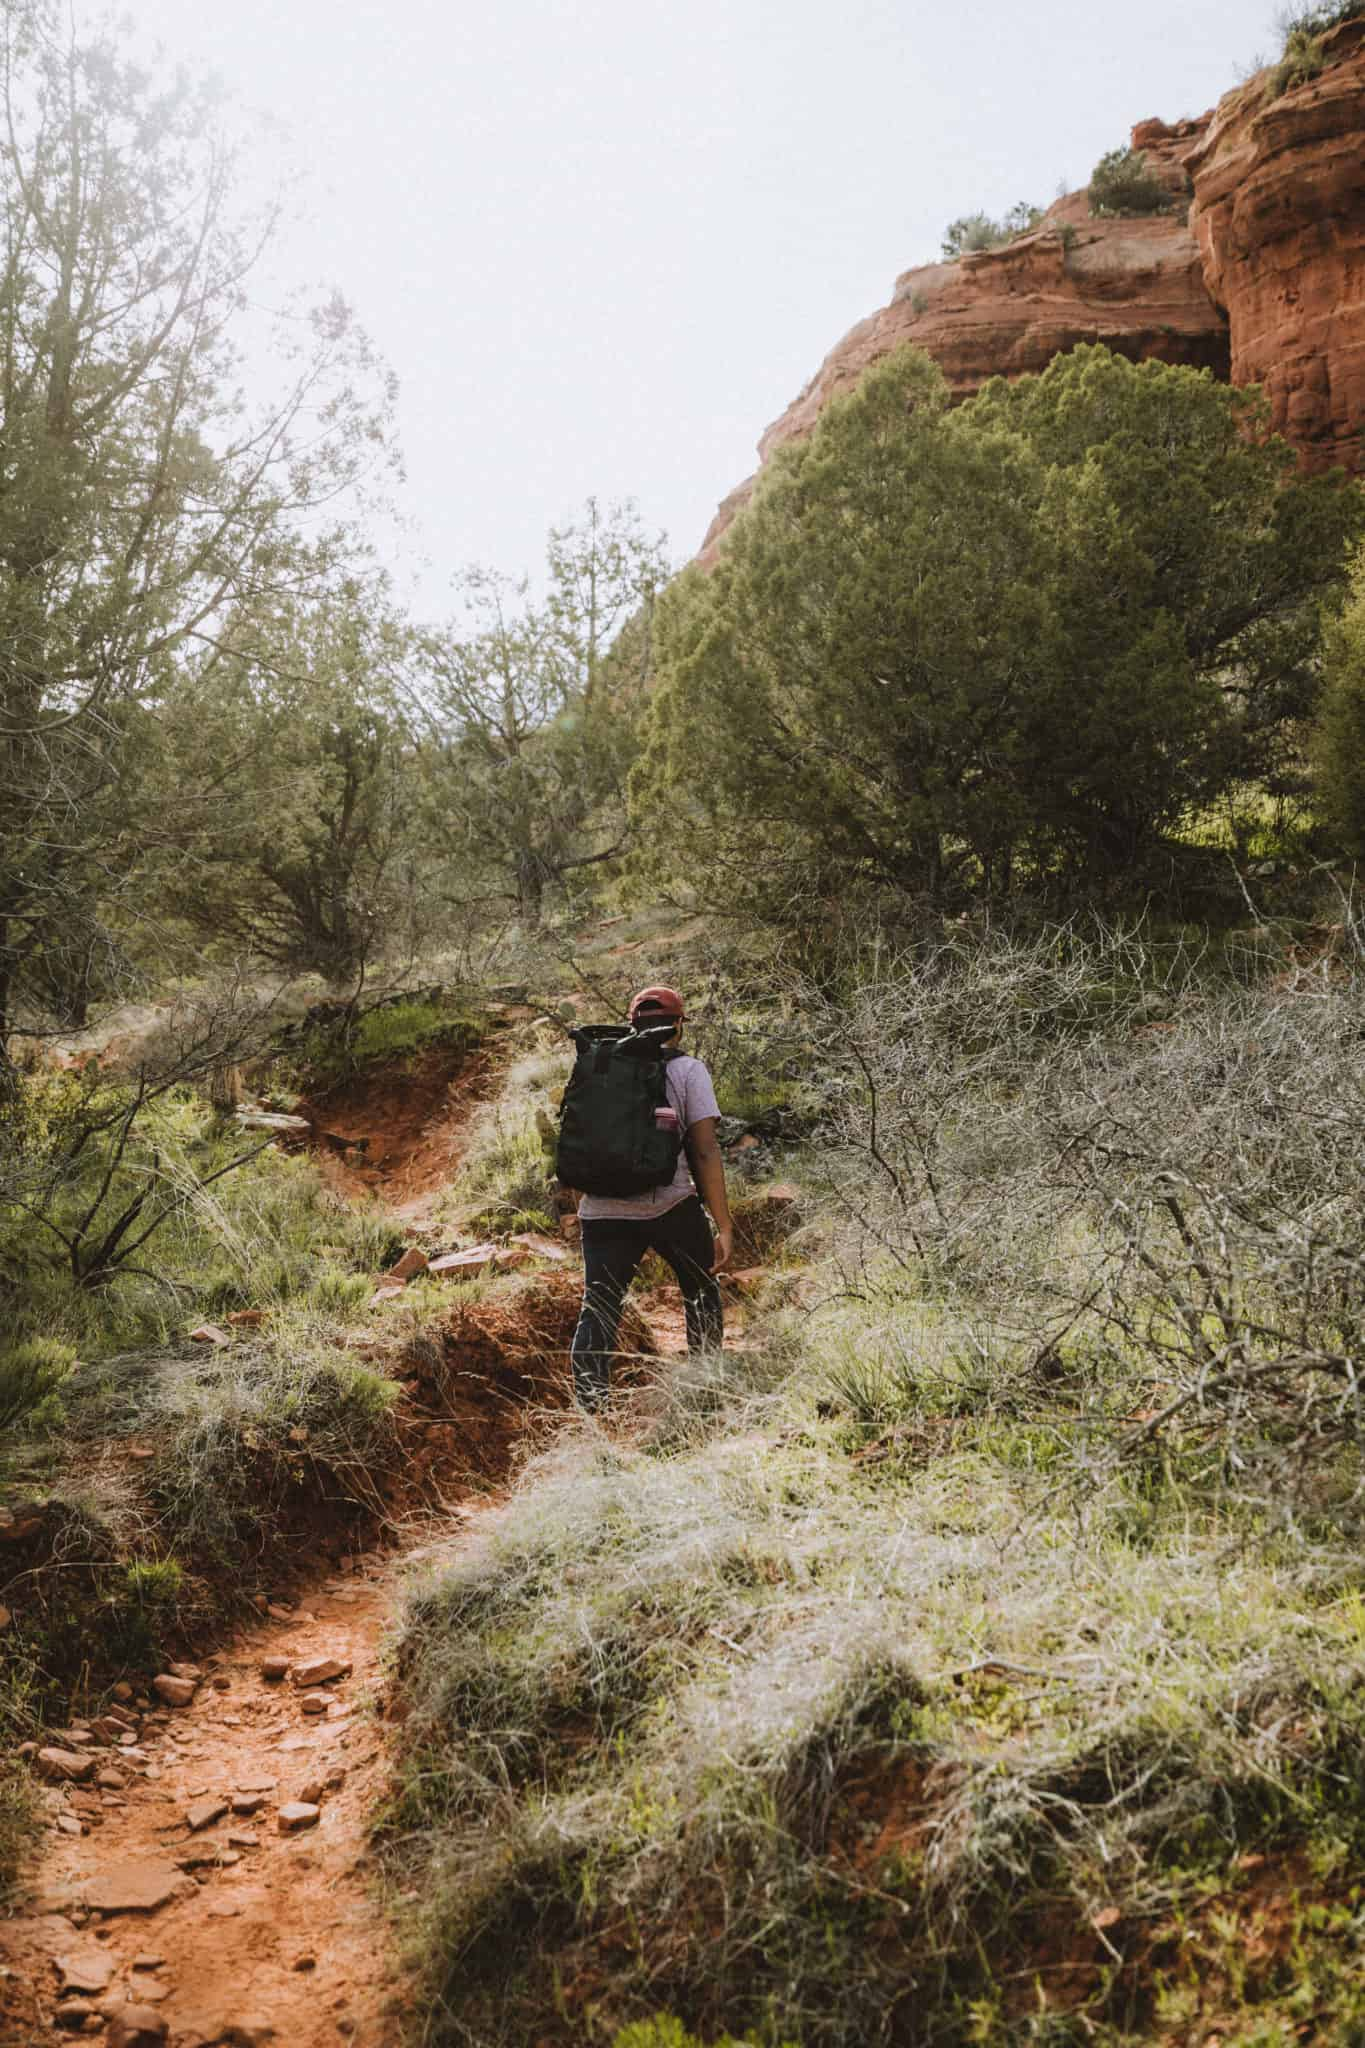 Berty taking the trail up to the birthing cave